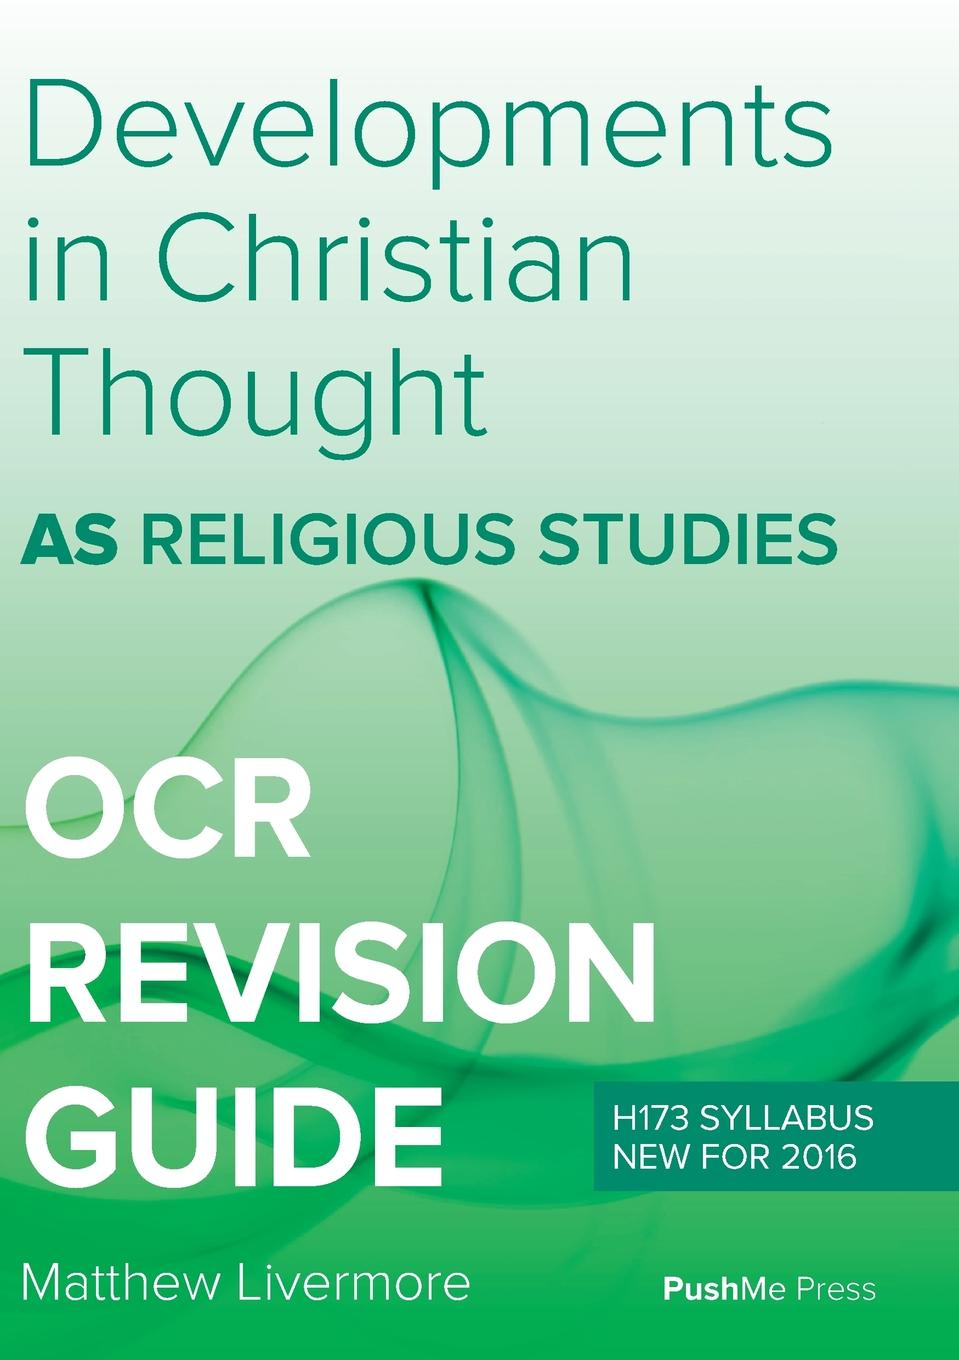 Matthew Livermore AS Developments in Christian Thought. AS Religious Studies for OCR duns john science and christian thought